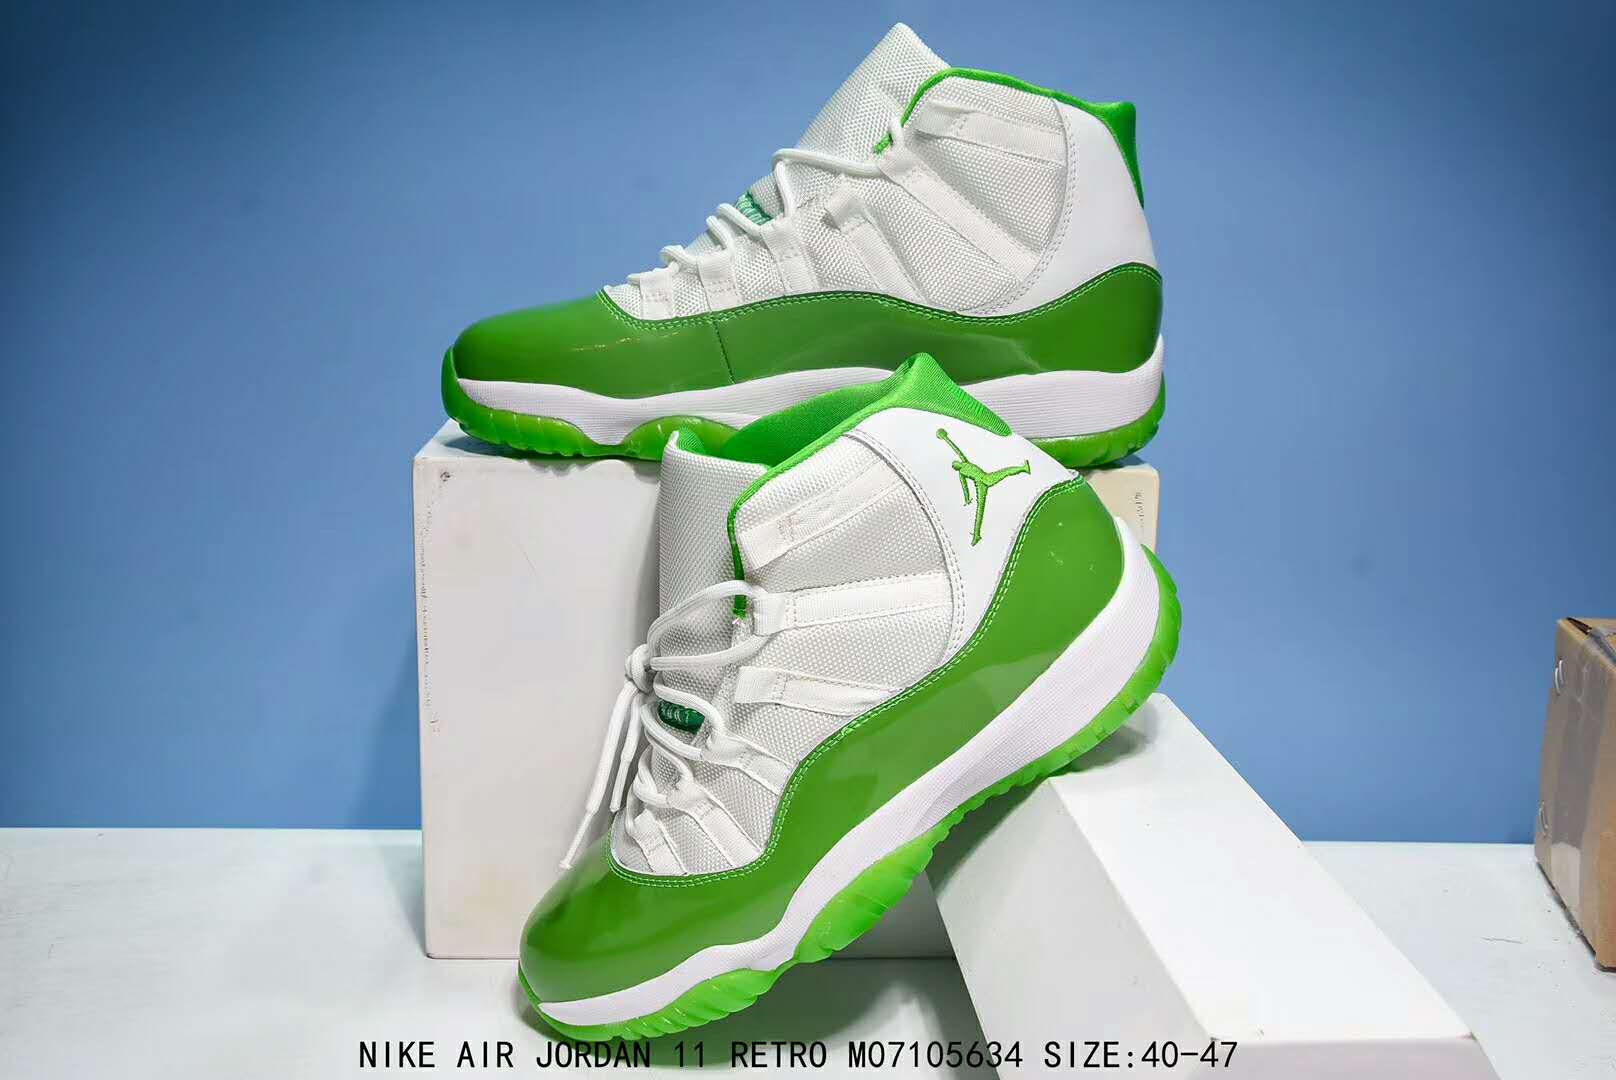 New Air Jordan 11 Retro Apple Green Shoes